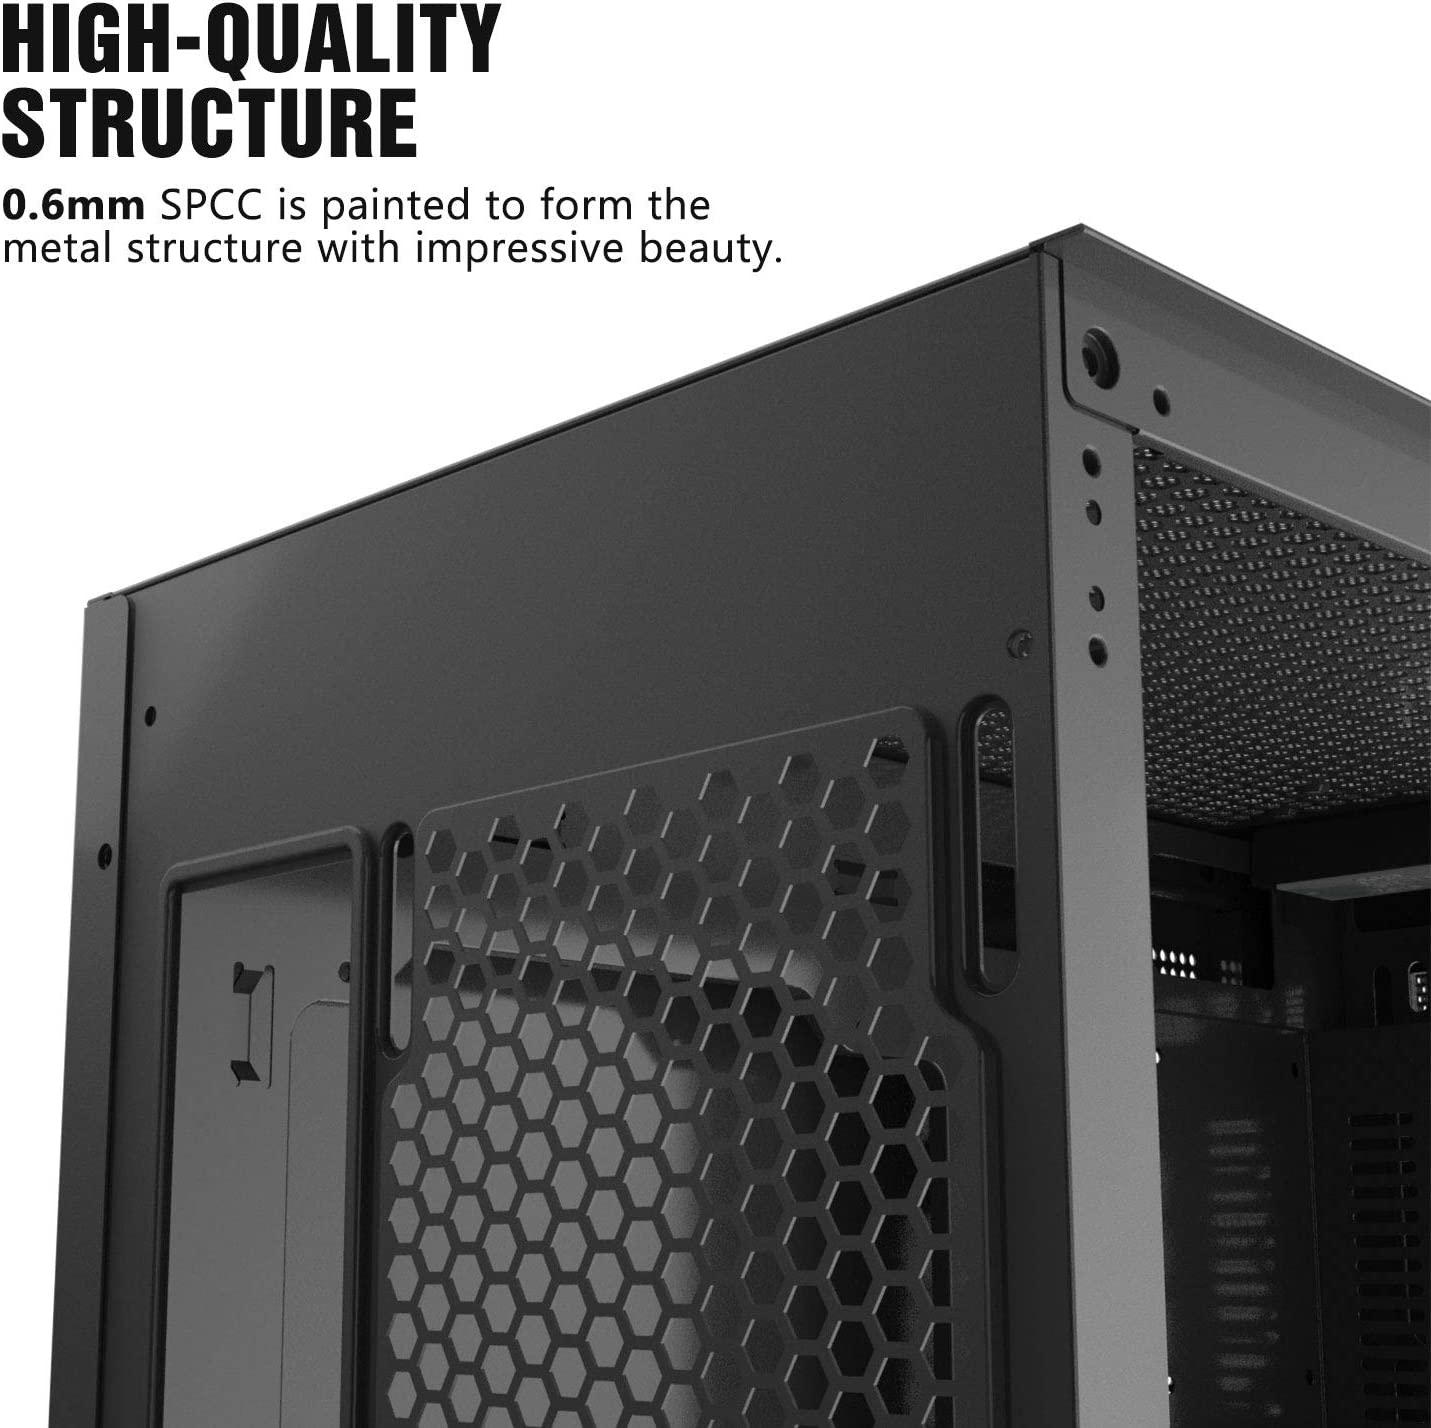 darkFlash Micro ATX Mini ITX Tower MicroATX Computer Case with Magnetic Design Wide Open Door Opening Swing Type Tempered Glass Side Panel DLM21 White